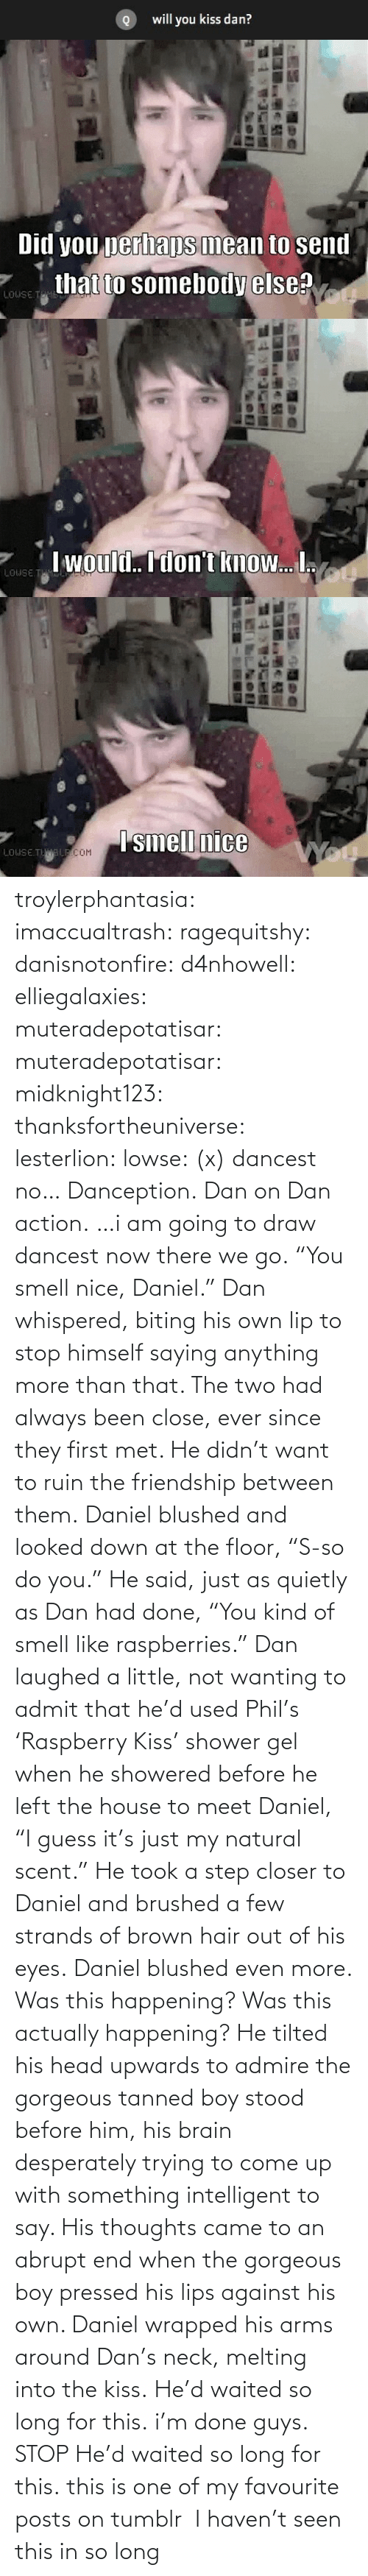 """Hair Out: will you kiss dan?   Did you perhaps mean to send  that to somebody else?  LOUSE T   I would. I don't know. I.  LOUSE T   Ismell nice  LOUSE TUWALE COM troylerphantasia:  imaccualtrash:  ragequitshy:  danisnotonfire:  d4nhowell:  elliegalaxies:  muteradepotatisar:  muteradepotatisar:  midknight123:  thanksfortheuniverse:  lesterlion:  lowse:  (x)  dancest  no… Danception.  Dan on Dan action.  …i am going to draw dancest now   there we go.  """"You smell nice, Daniel."""" Dan whispered, biting his own lip to stop himself saying anything more than that. The two had always been close, ever since they first met. He didn't want to ruin the friendship between them. Daniel blushed and looked down at the floor, """"S-so do you."""" He said, just as quietly as Dan had done, """"You kind of smell like raspberries."""" Dan laughed a little, not wanting to admit that he'd used Phil's 'Raspberry Kiss' shower gel when he showered before he left the house to meet Daniel, """"I guess it's just my natural scent."""" He took a step closer to Daniel and brushed a few strands of brown hair out of his eyes. Daniel blushed even more. Was this happening? Was this actually happening? He tilted his head upwards to admire the gorgeous tanned boy stood before him, his brain desperately trying to come up with something intelligent to say. His thoughts came to an abrupt end when the gorgeous boy pressed his lips against his own. Daniel wrapped his arms around Dan's neck, melting into the kiss. He'd waited so long for this.  i'm done  guys.  STOP  He'd waited so long for this.  this is one of my favourite posts on tumblr   I haven't seen this in so long"""